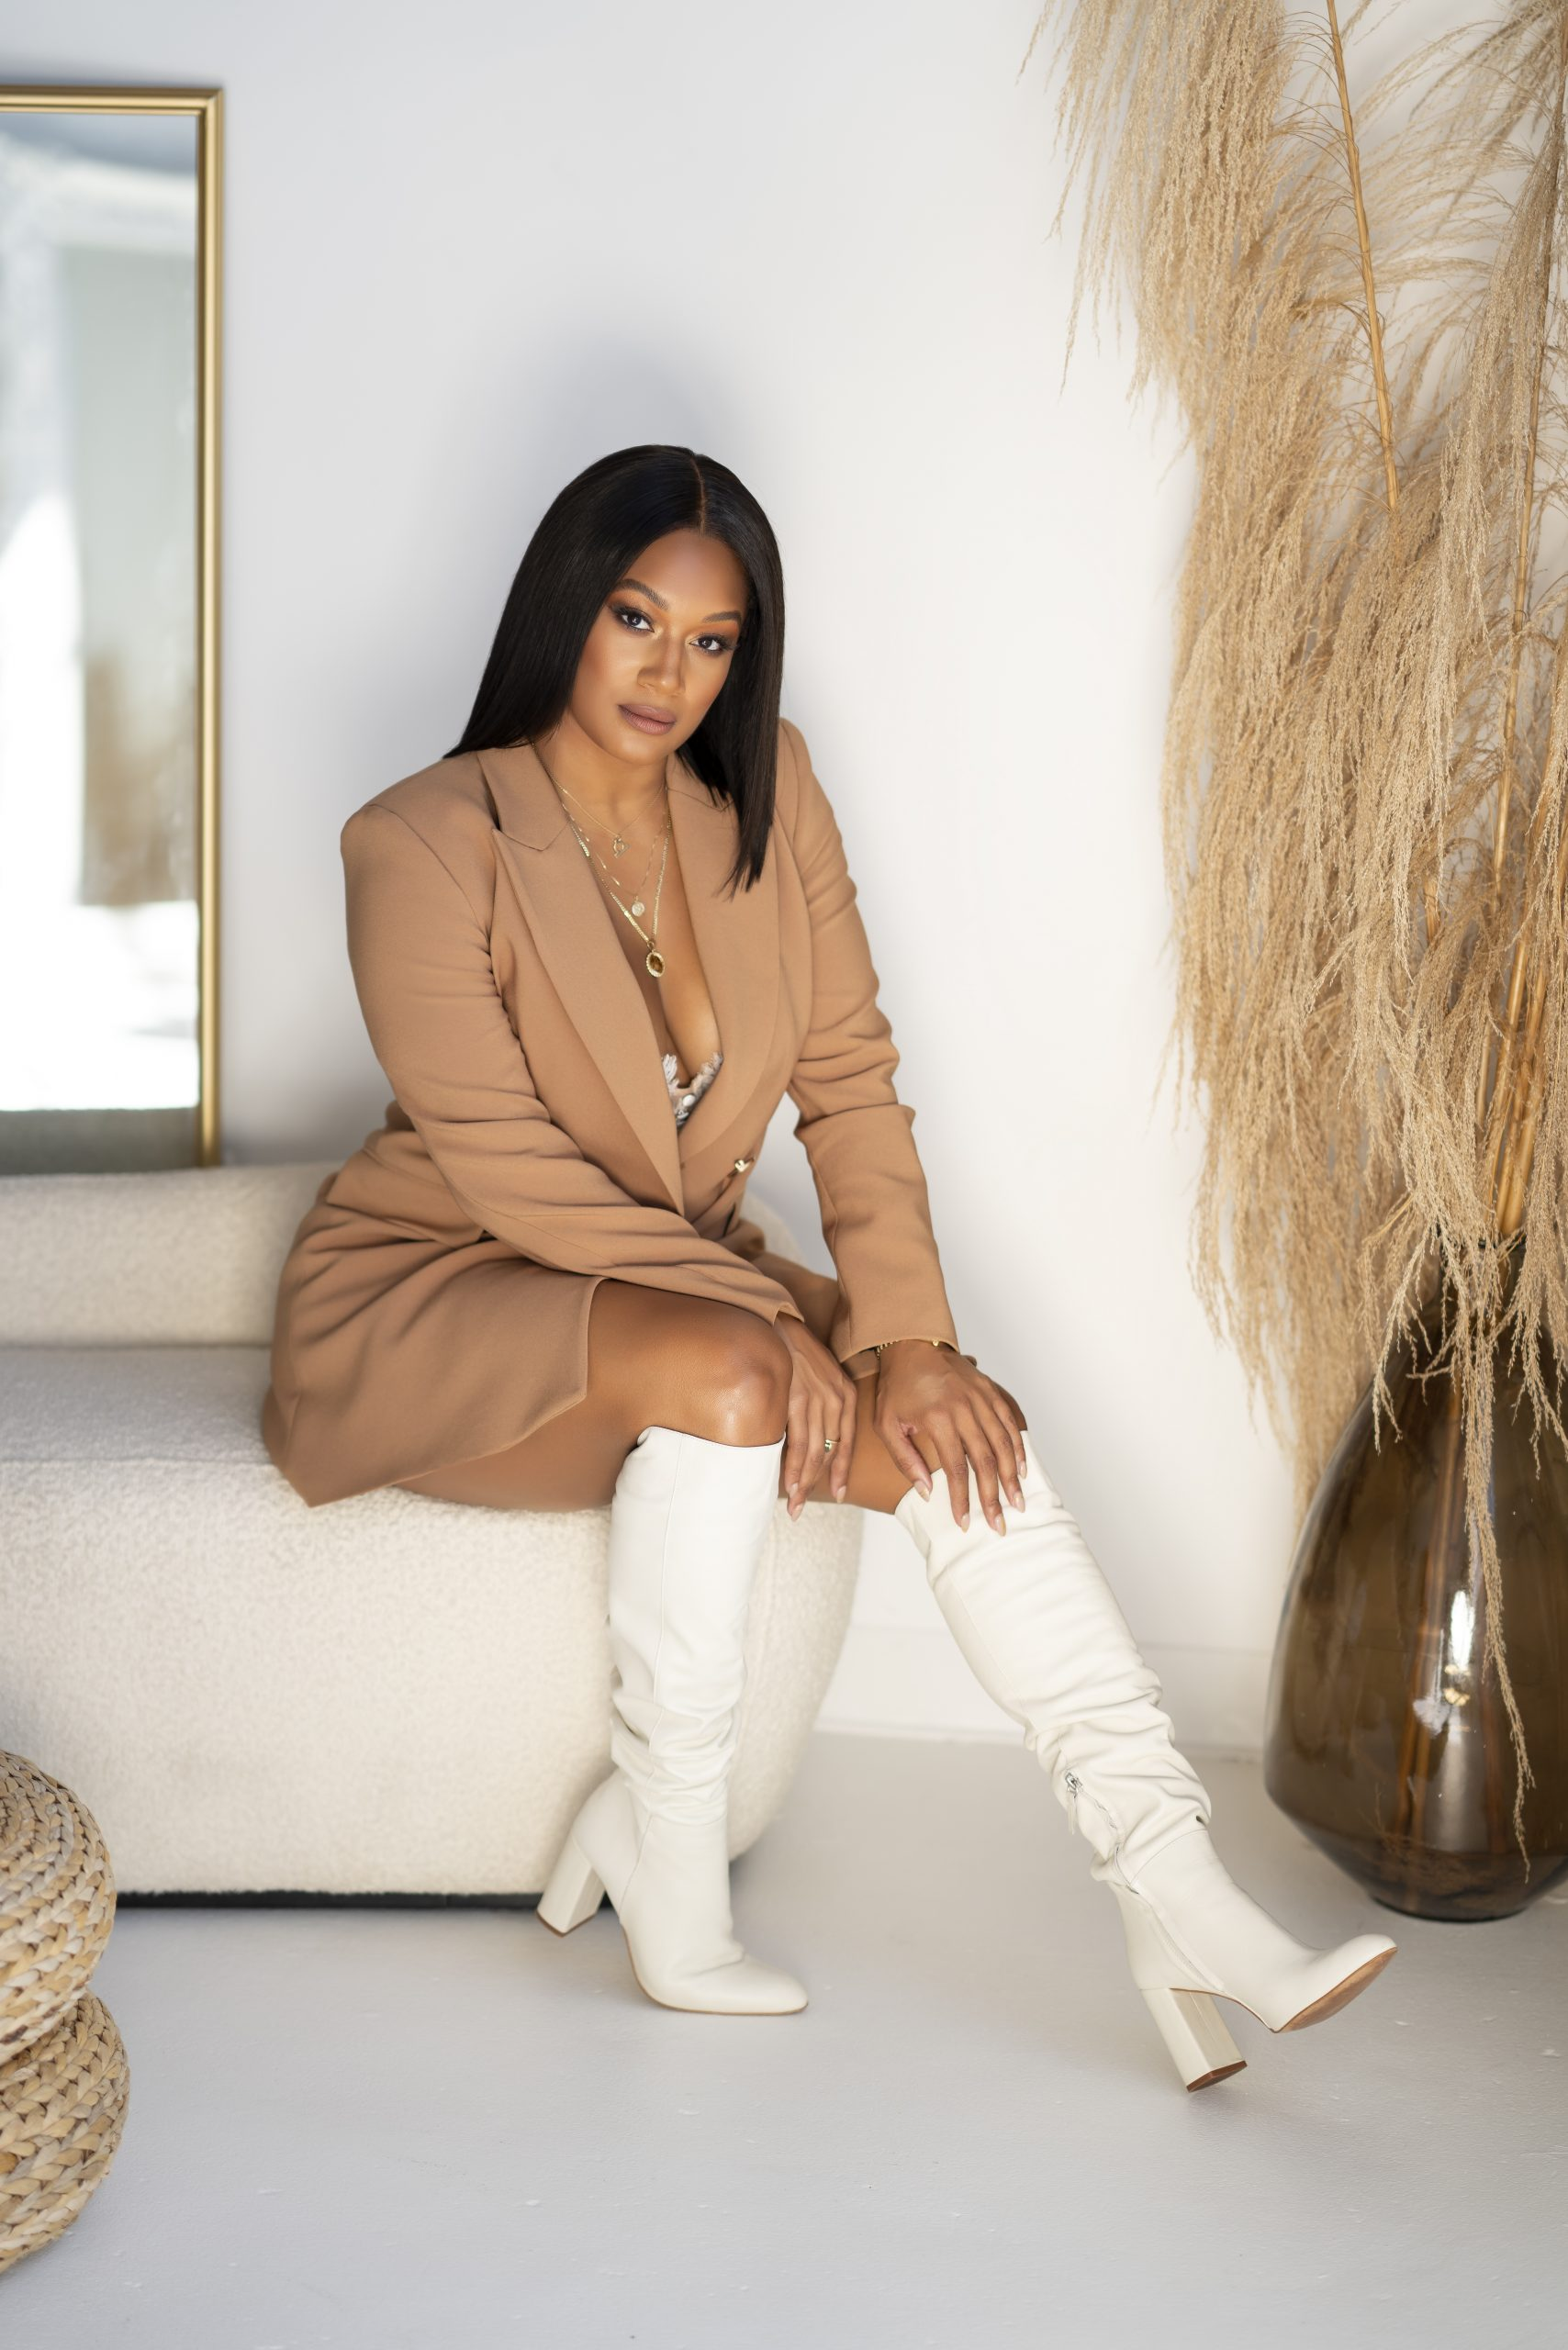 One On One With Actress Crystal Renee' Hayslett From BET's Sistas